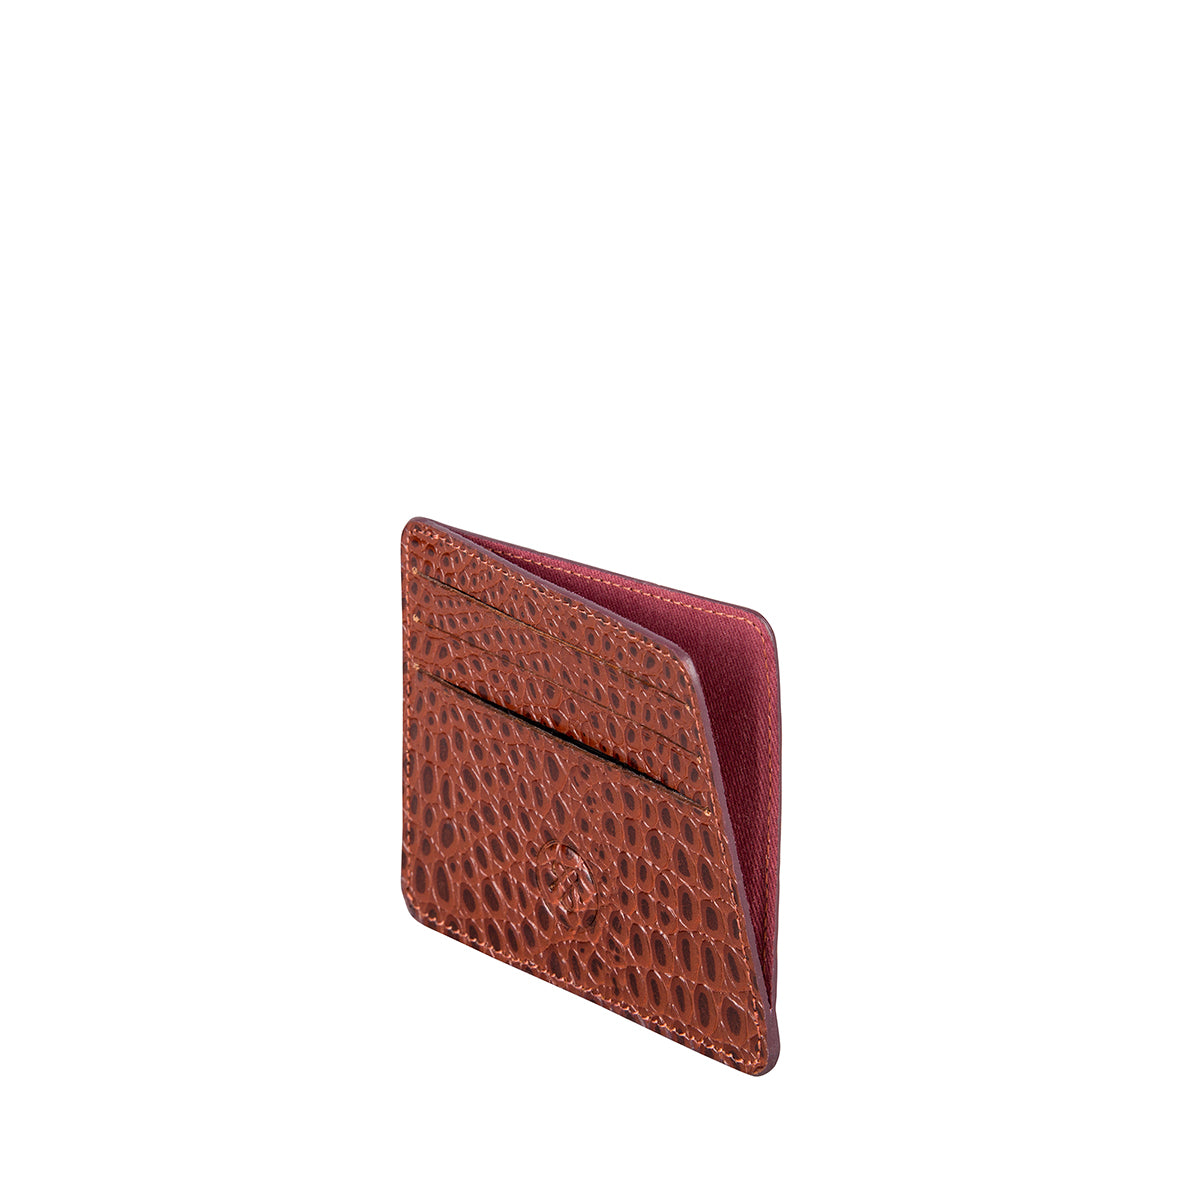 Image 3 of the 'Marco' Chestnut Mock Croc Veg-Tanned Leather Wallet